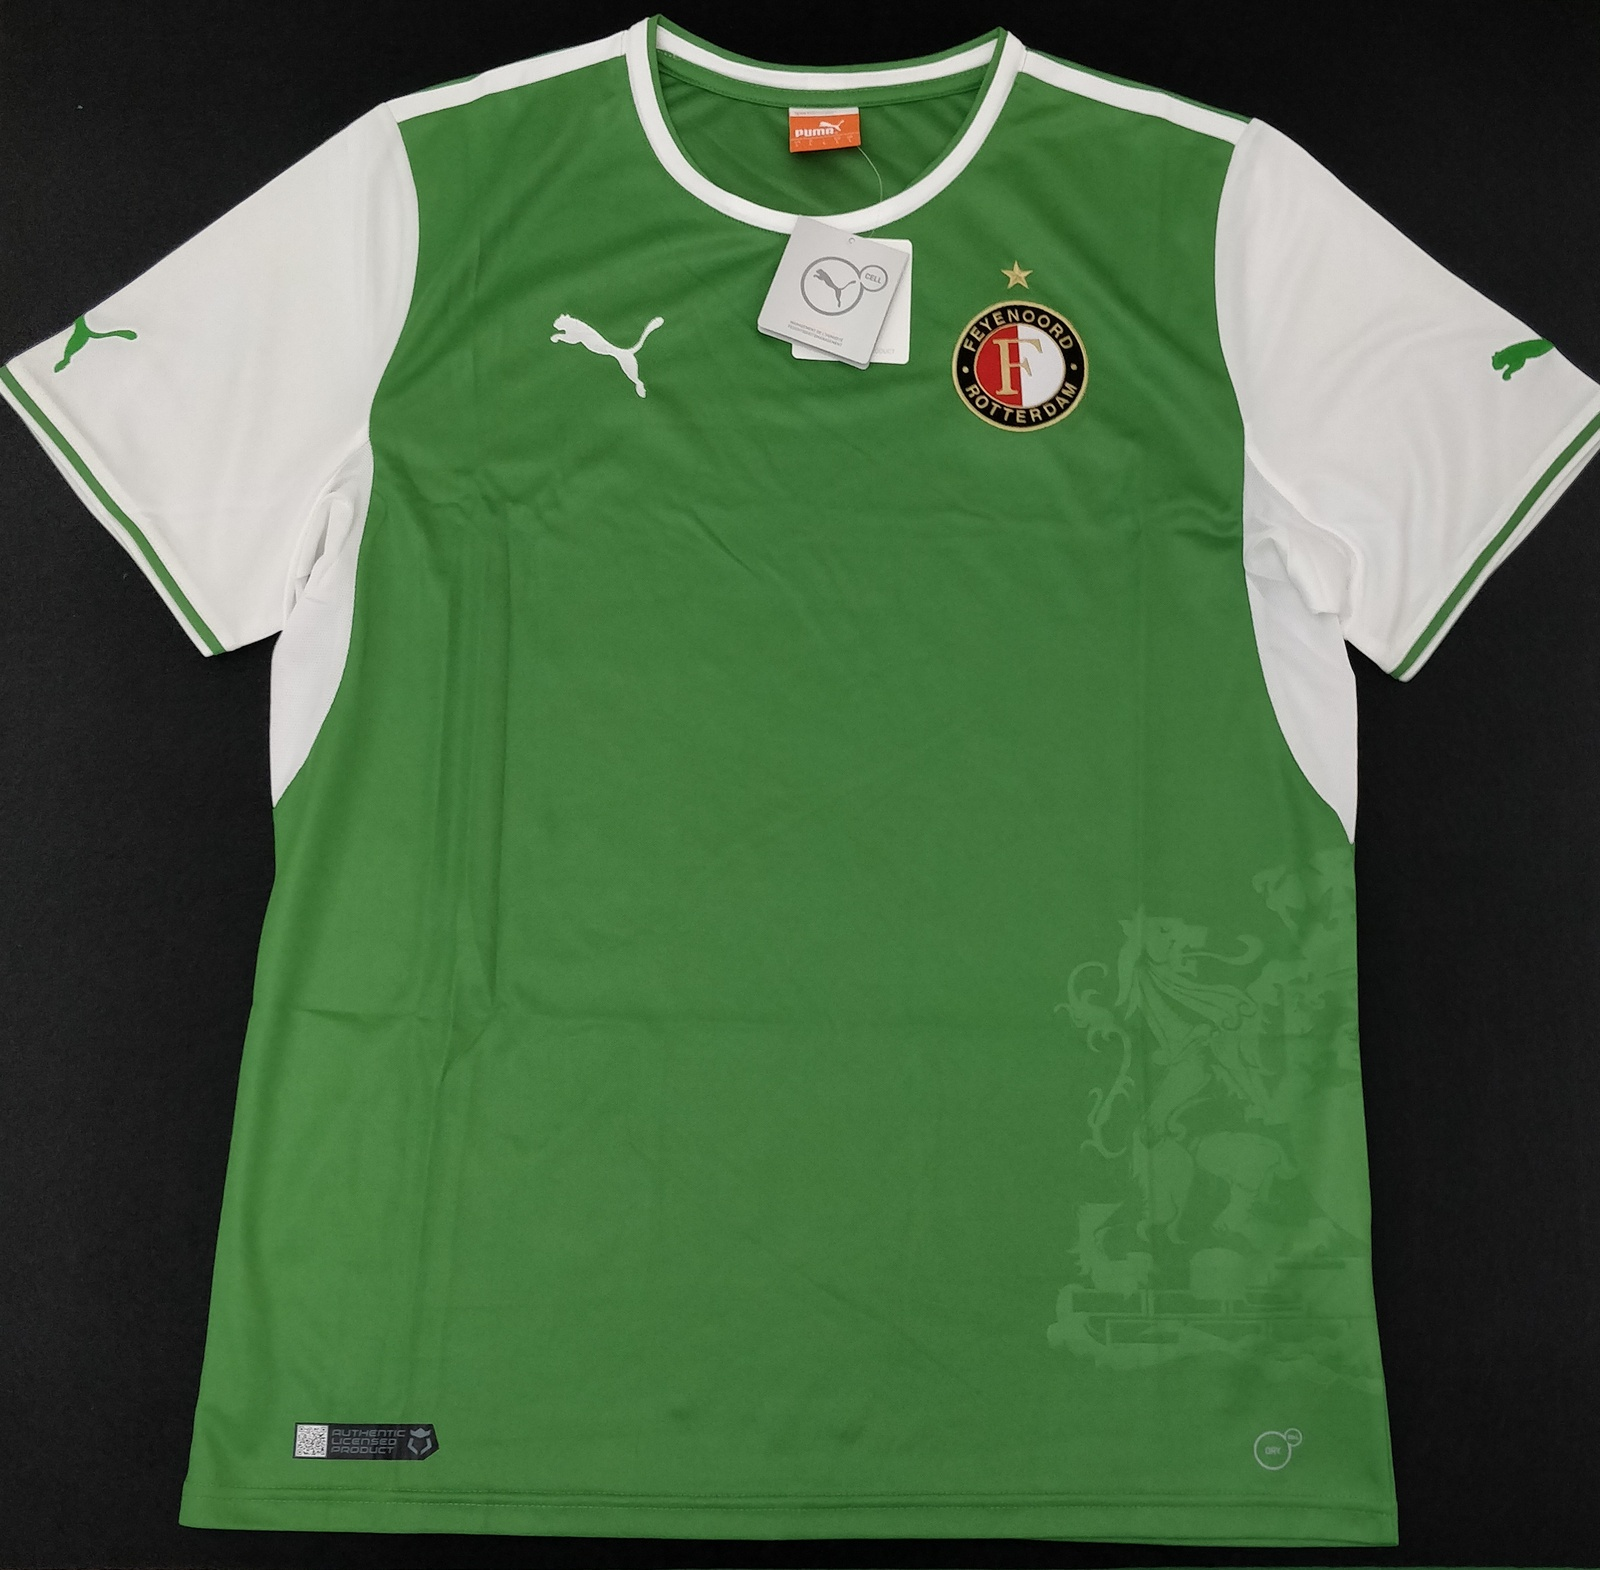 Primary image for Feyenoord 2013/14 Away Jersey Puma Fans Version %100 Authentic BNWT